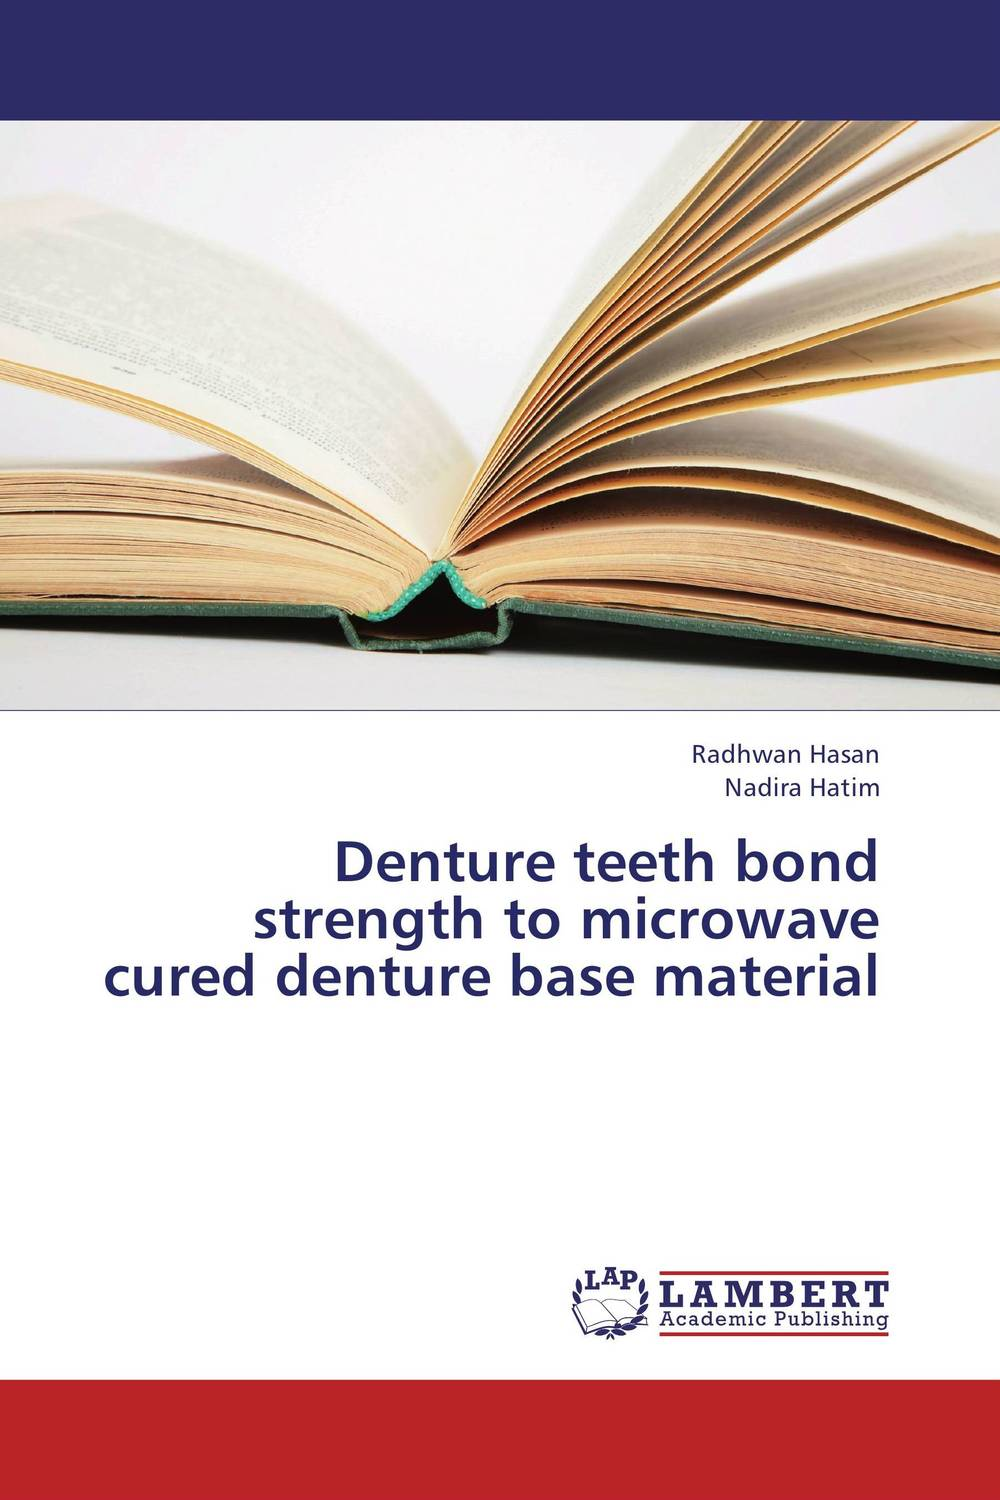 Denture teeth bond strength to microwave cured denture base material treatment effects on microtensile bond strength of repaired composite